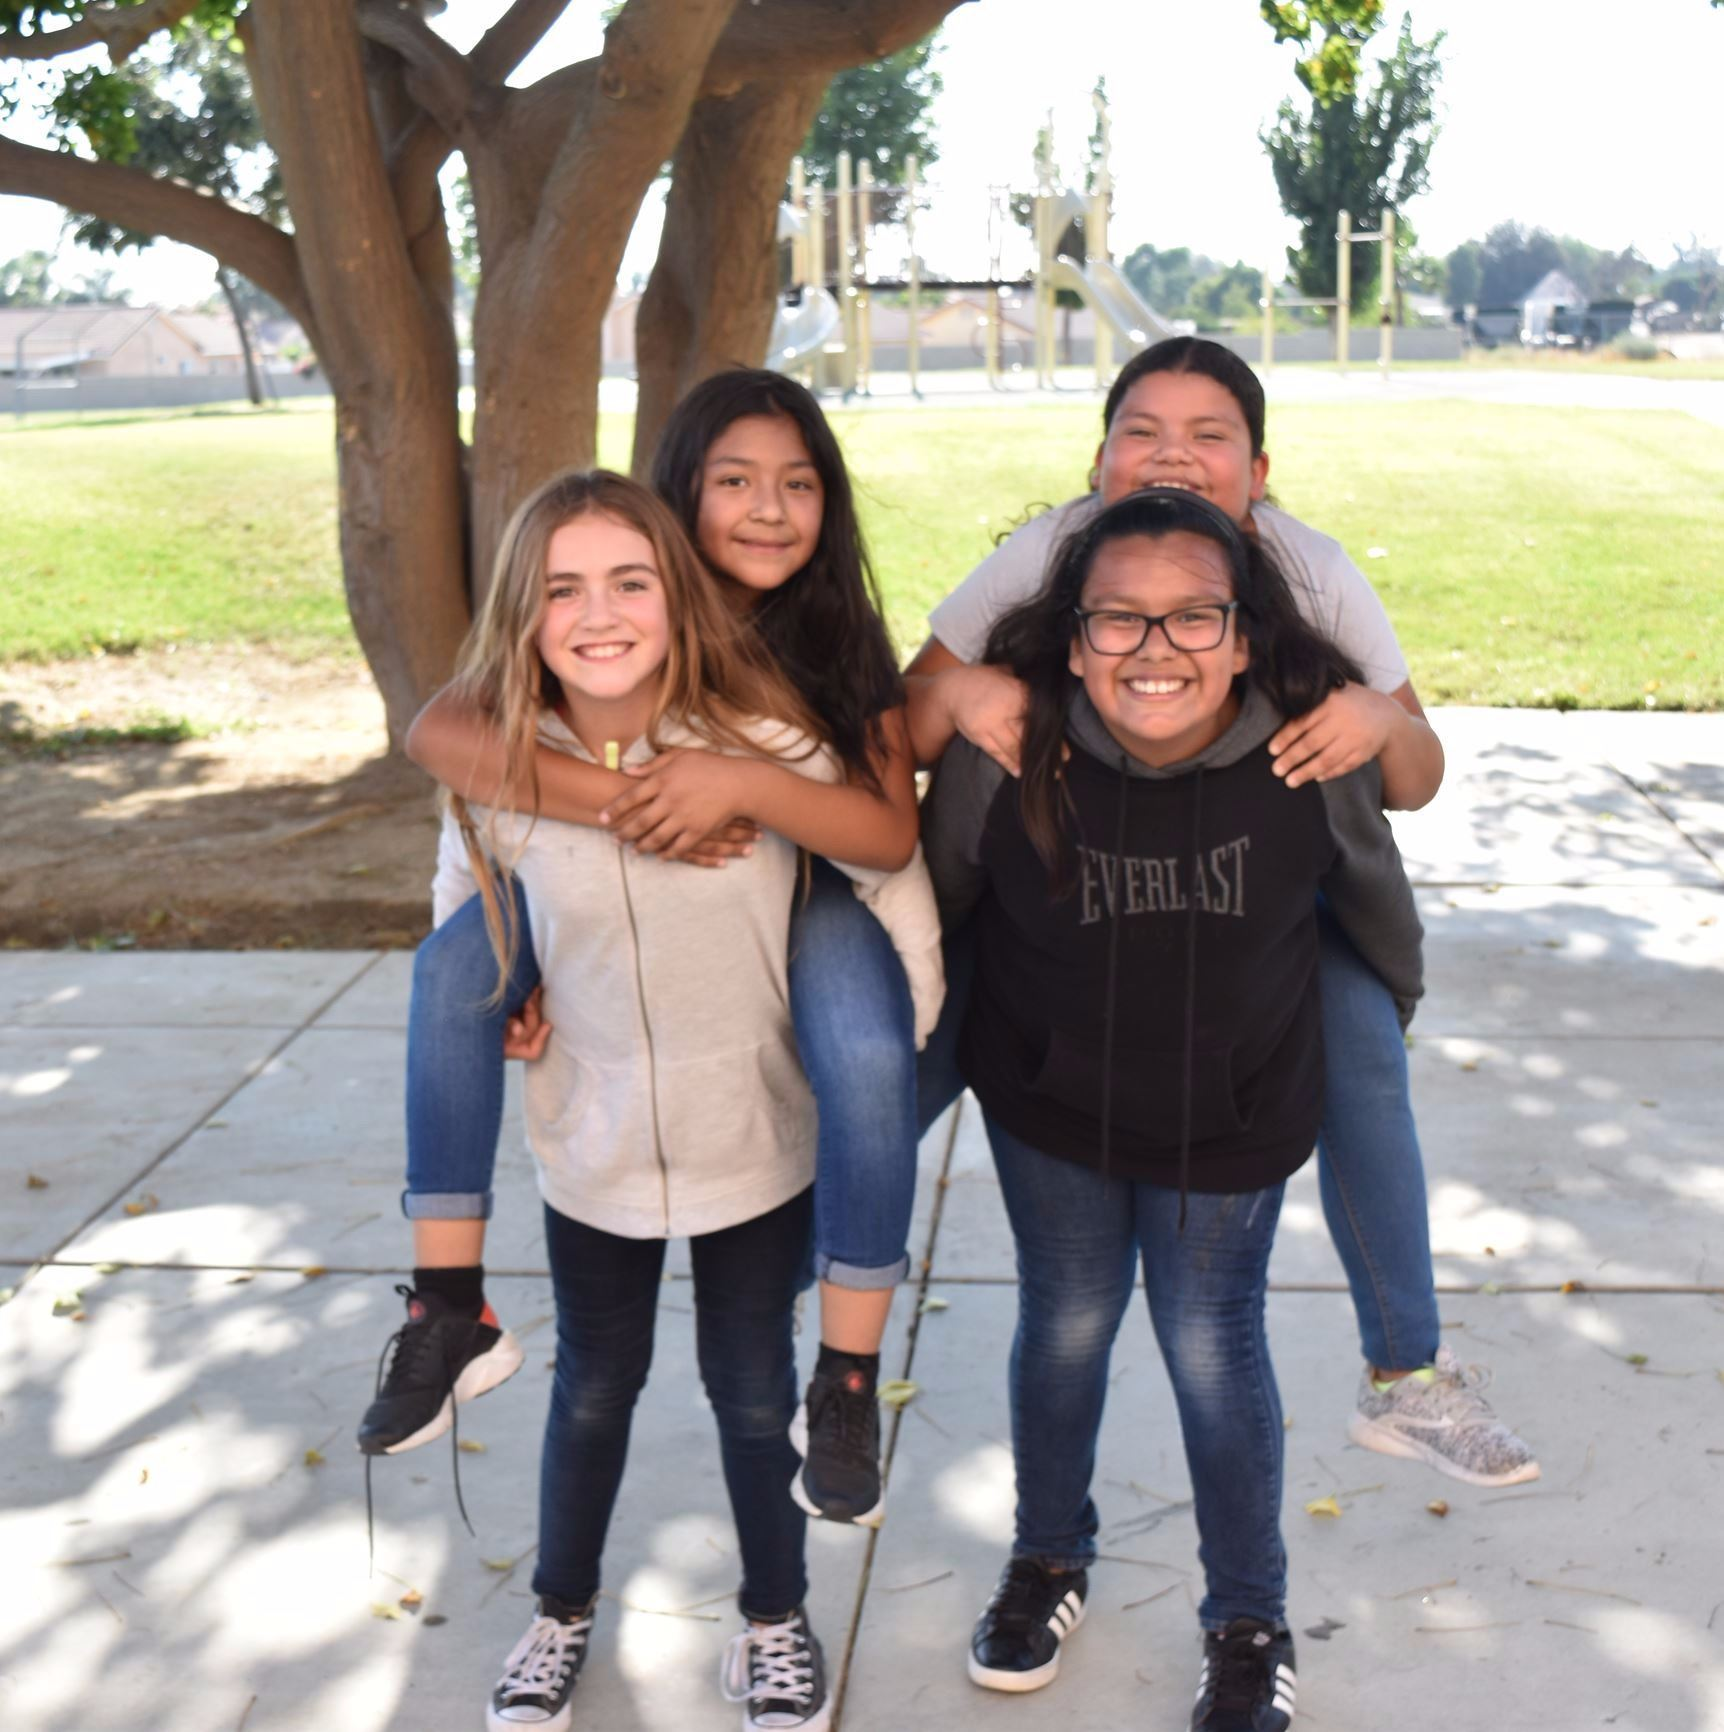 4 Girls Giving Piggyback Rides Posing for Picture